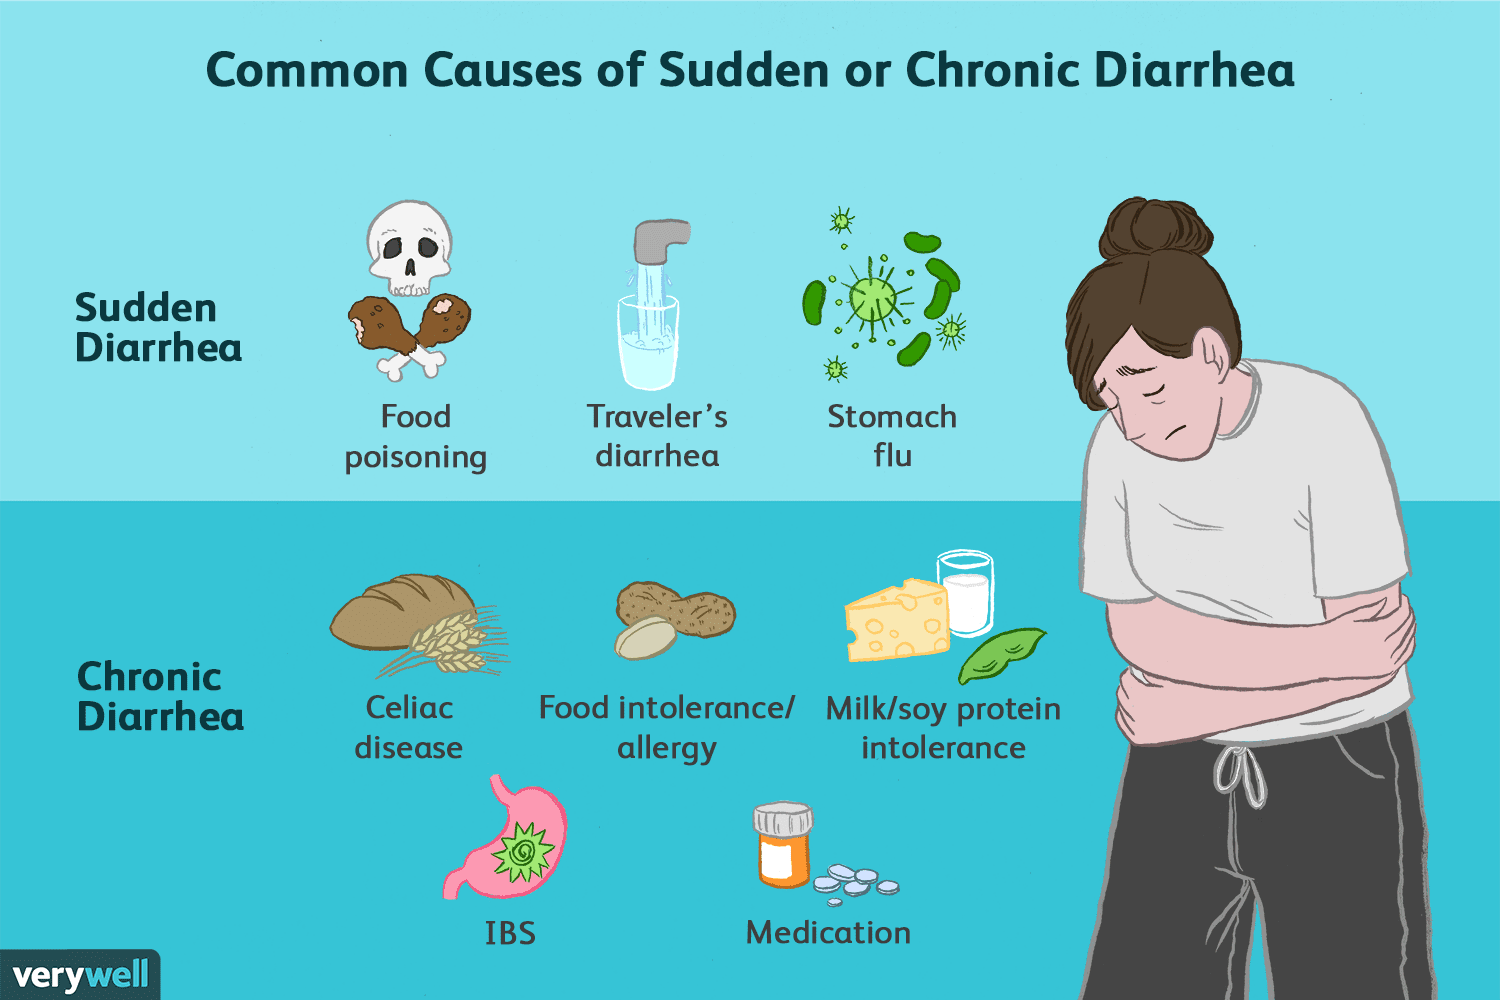 How Long Does Food Poisoning Take To Cause Diarrhea